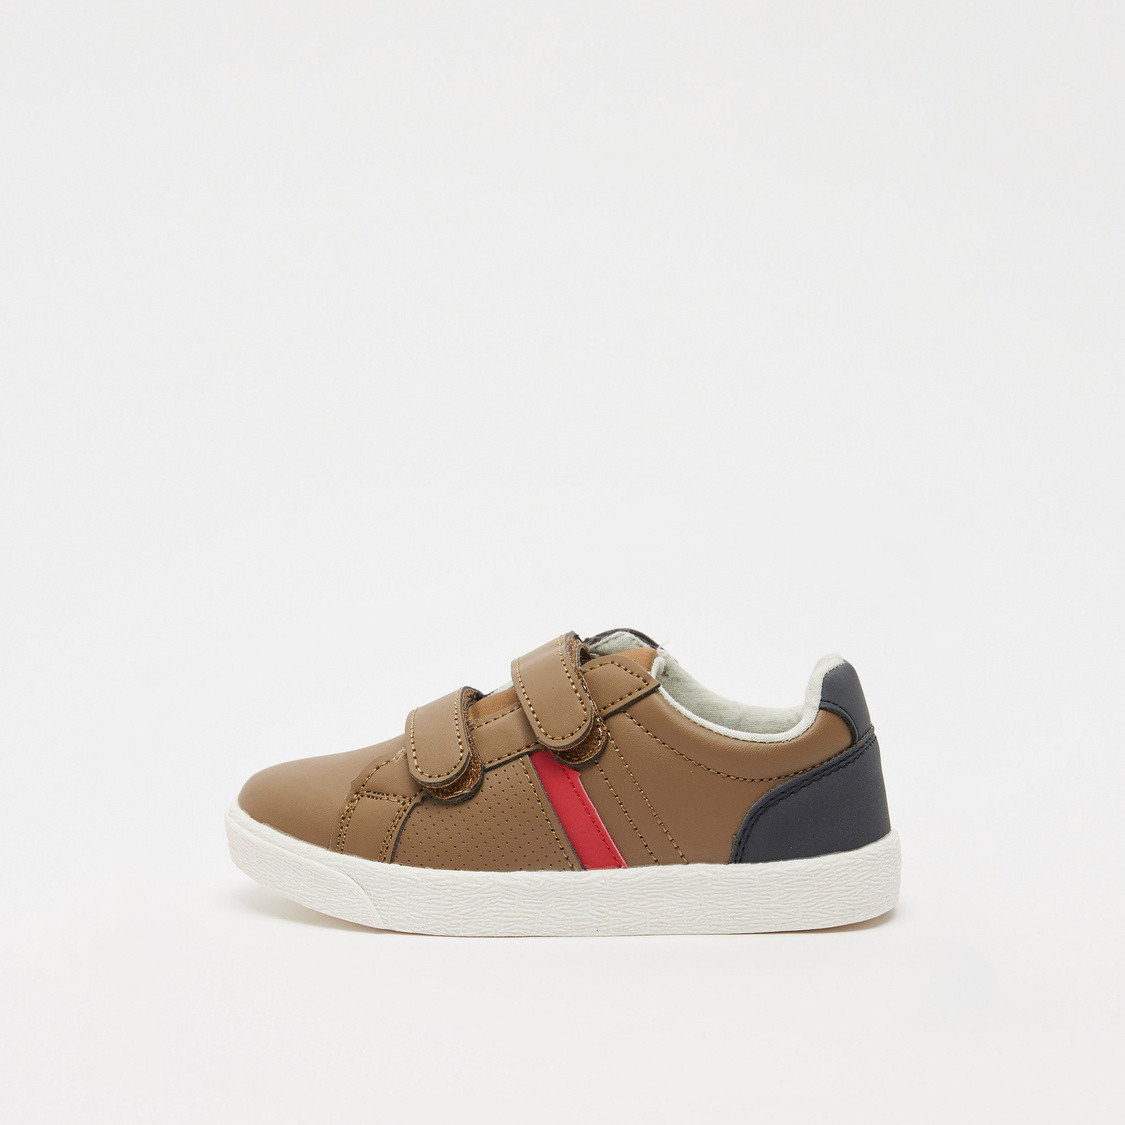 Textured Shoes with Hook and Loop Closure